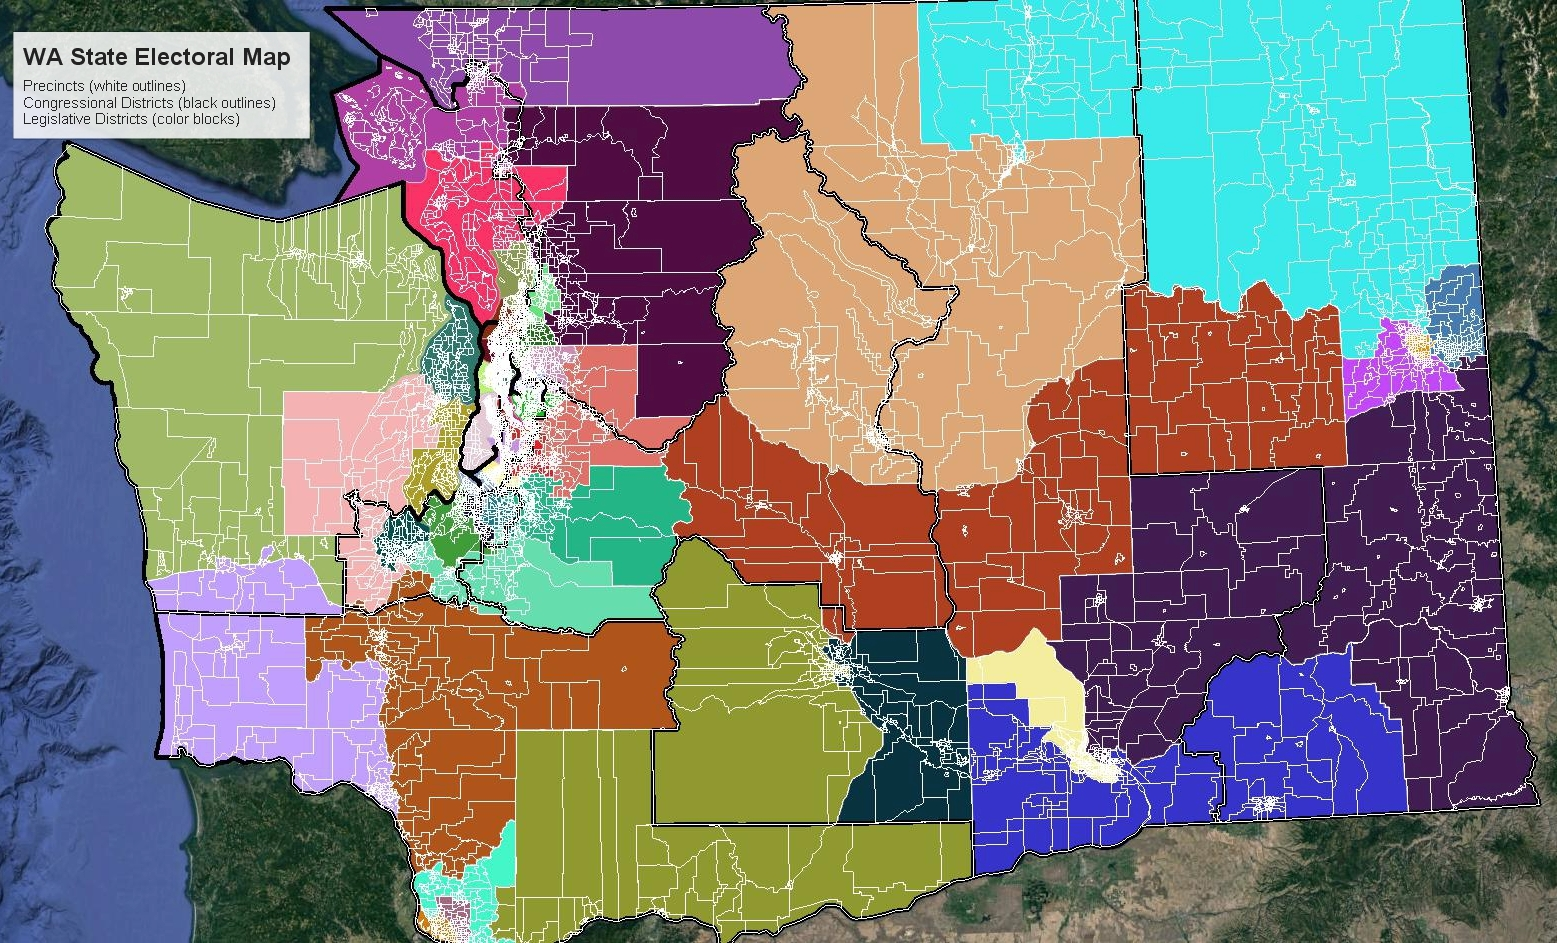 Bellingham Politics and Economics: 2018 Filing week is over ... on washington state voting map, seattle city council districts map, washington state mountains on map, washington state district 28, us house of representatives seat map, pocahontas state park hunting zone map, washington state senators 2014, washington state schools map, washington state soils map, berks county pa school districts map, washington state census map, washington state roads map, washington state election map 2012, washington congressional district 2, washington state counties map, washington state fire district map, kansas state house of representatives districts map, wa state districts map, washington state colleges and universities map, arizona state school districts map,